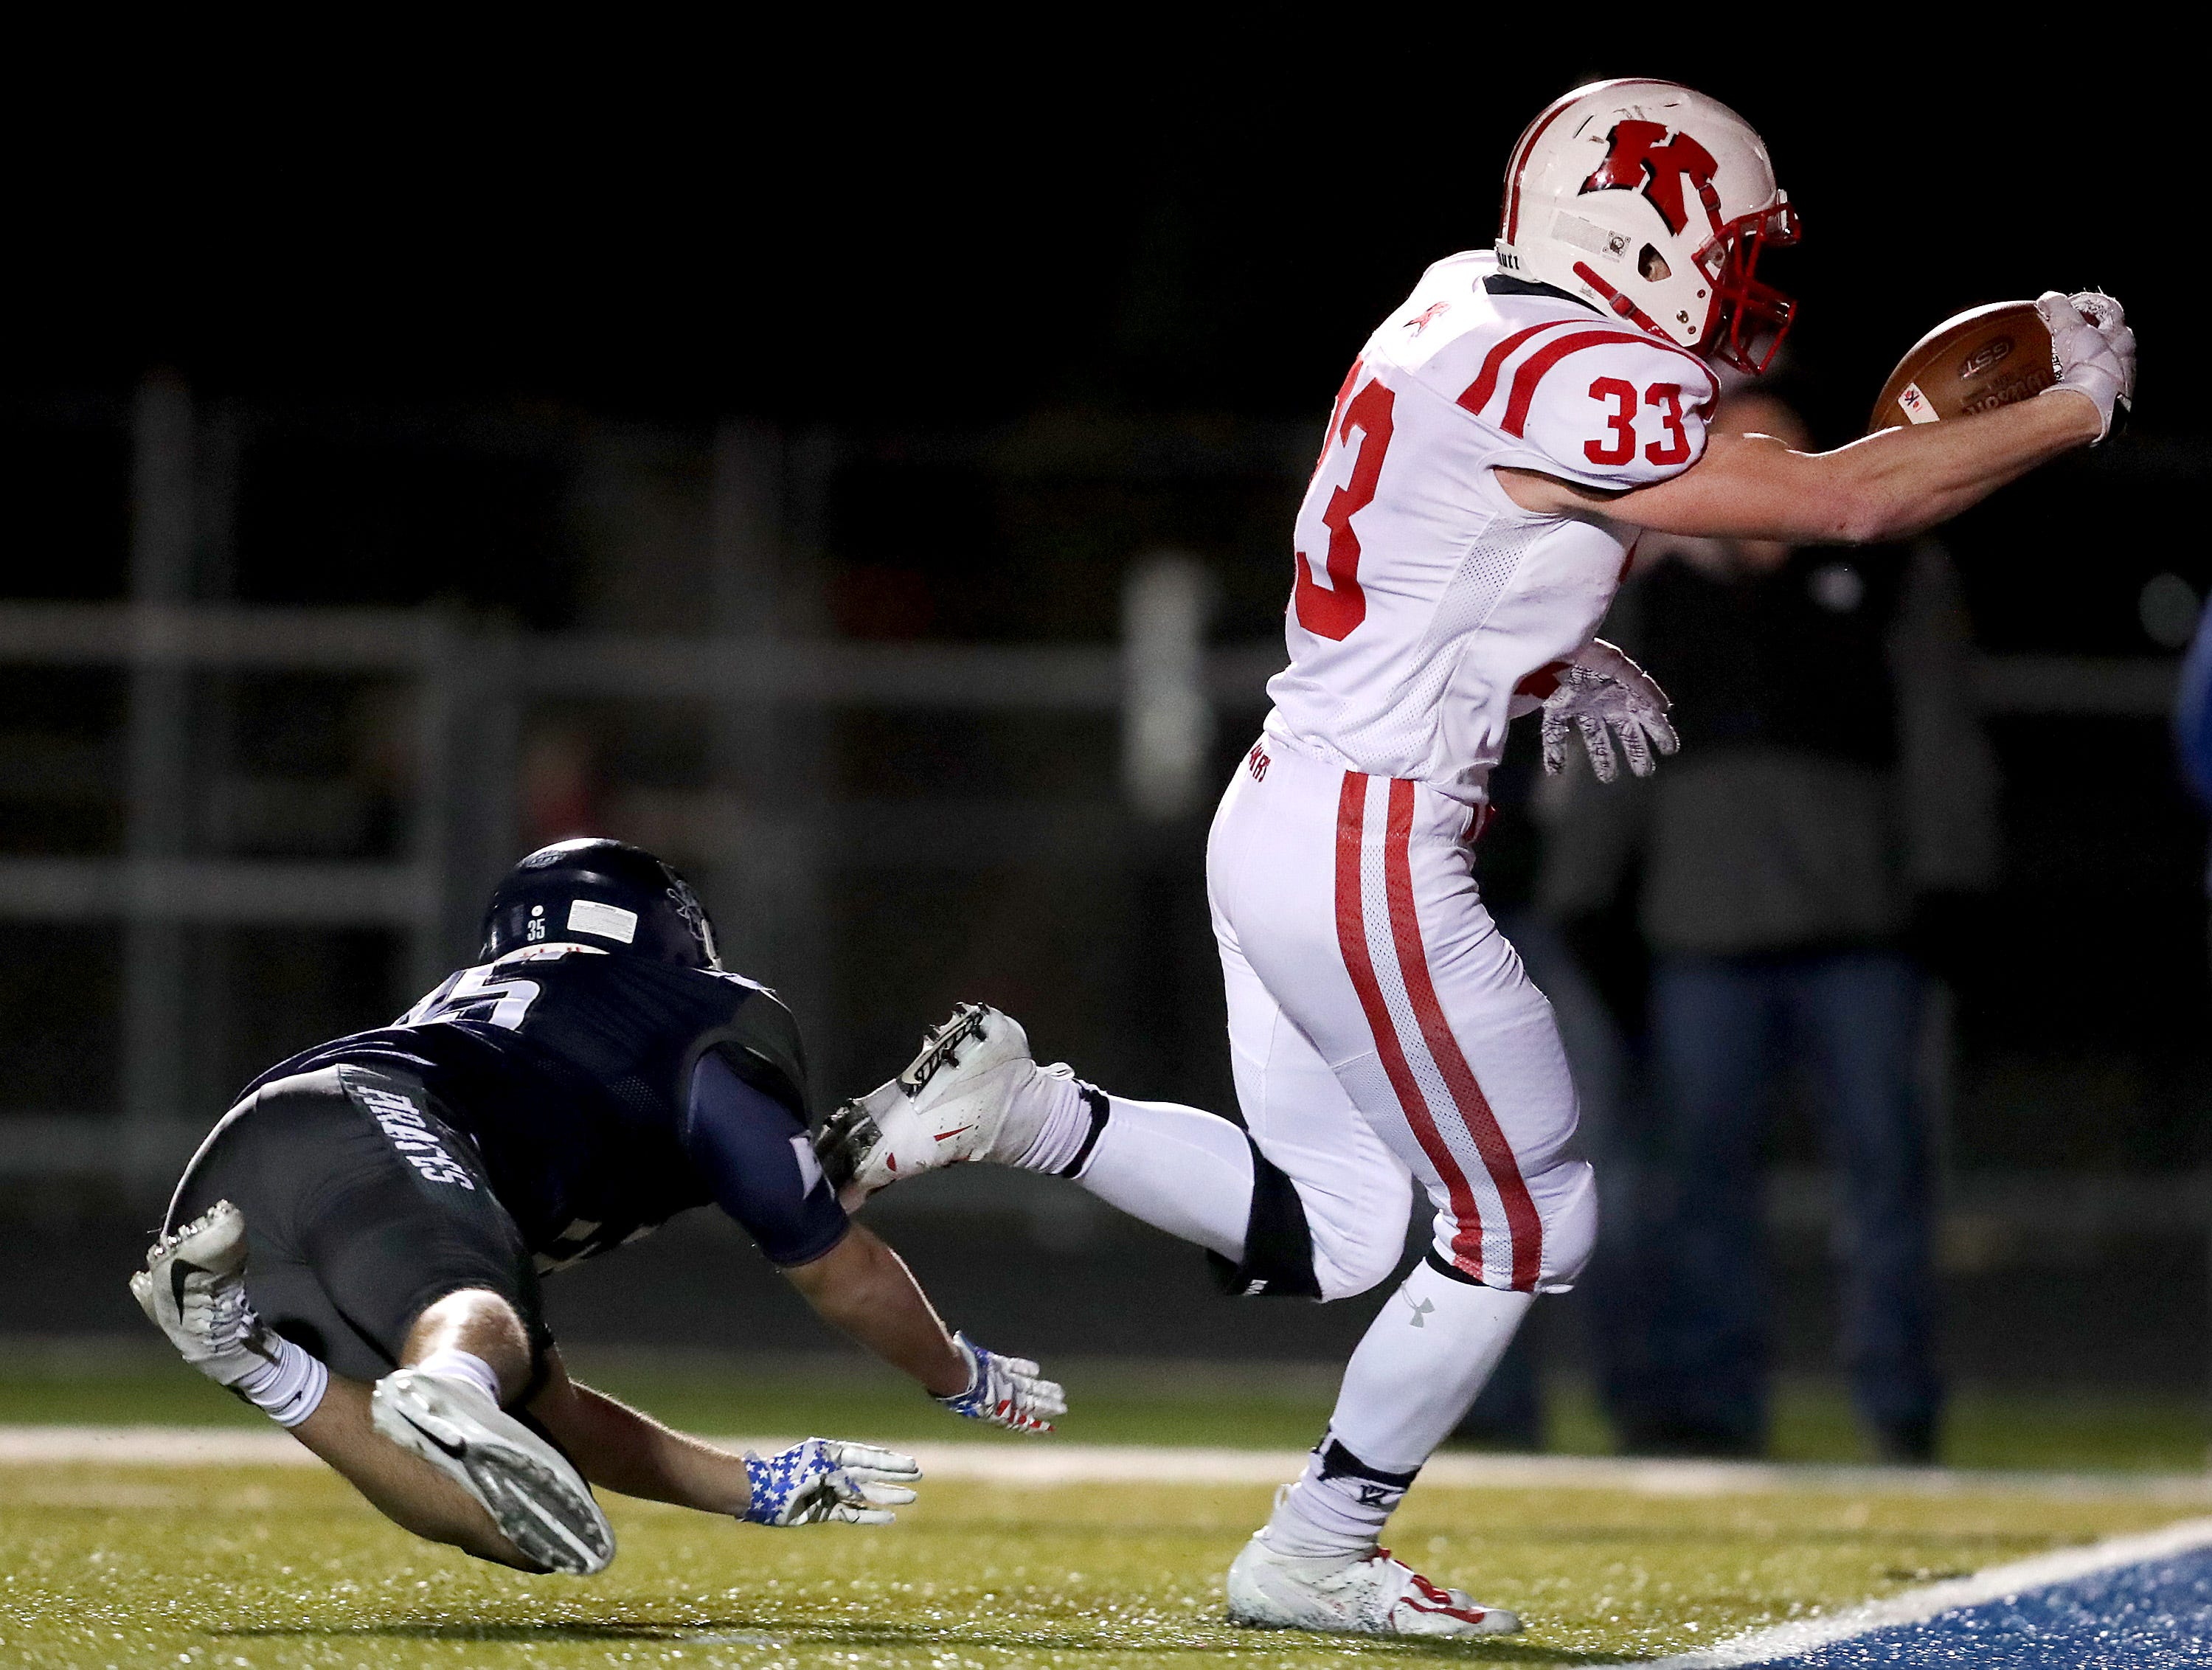 Kimberly High School's #33 Caleb Frazer crosses the goal line in the fourth quarter against Bay Port High School during their WIAA Division 1 state quarterfinal football game on Friday, November 2, 2018, in Suamico, Wis.  Kimberly defeated Bay Port 38 to 20. Wm. Glasheen/USA TODAY NETWORK-Wisconsin.